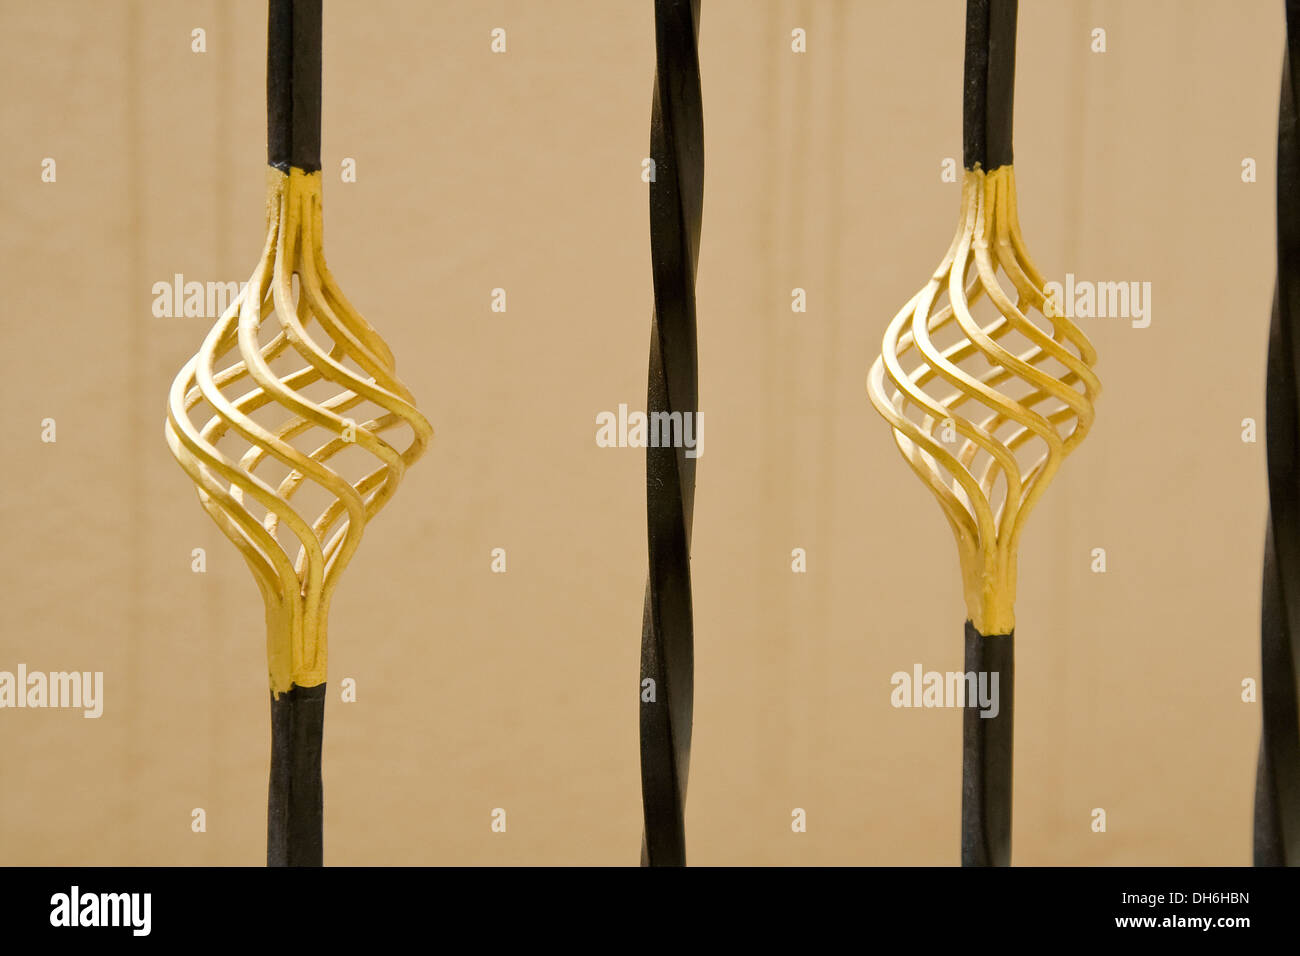 Bulbous design of gold-painted iron barricade rods - Stock Image